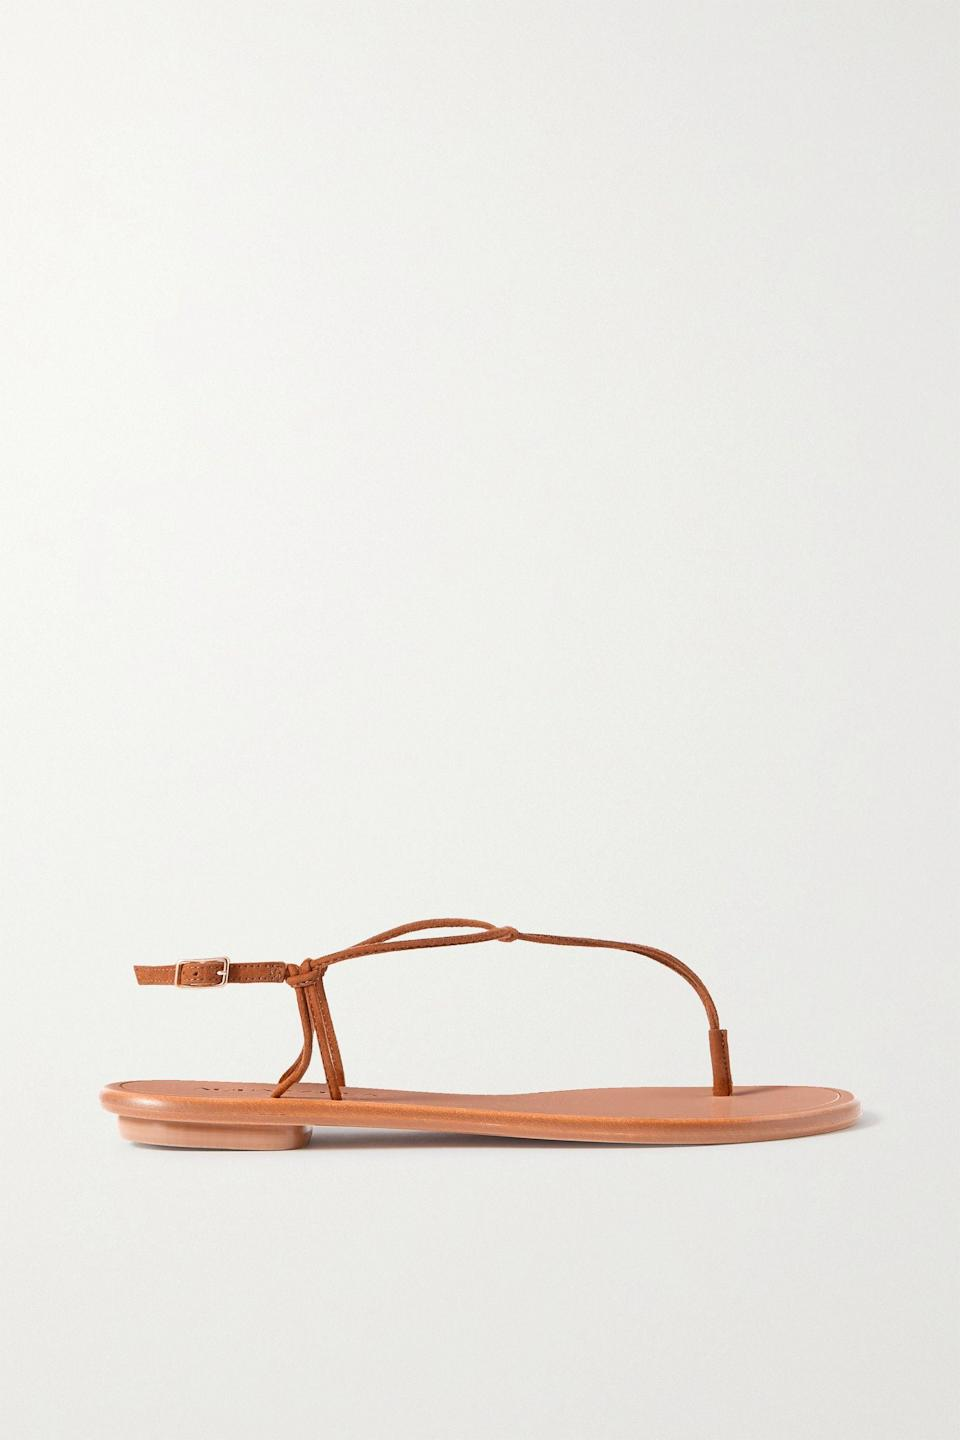 """<p><strong>Aquazzura</strong></p><p>net-a-porter.com</p><p><strong>$395.00</strong></p><p><a href=""""https://click.linksynergy.com/deeplink?id=6Km1lFswsiY&mid=24449&murl=https%3A%2F%2Fwww.net-a-porter.com%2Fen-us%2Fshop%2Fproduct%2Faquazzura%2Fvery-capri-suede-sandals%2F1323215"""" rel=""""nofollow noopener"""" target=""""_blank"""" data-ylk=""""slk:Shop Now"""" class=""""link rapid-noclick-resp"""">Shop Now</a></p><p>You'll walk for miles in this minimalist friendly sandal. The simple design gives a barely-there feel making every day feel like a vacation. </p>"""